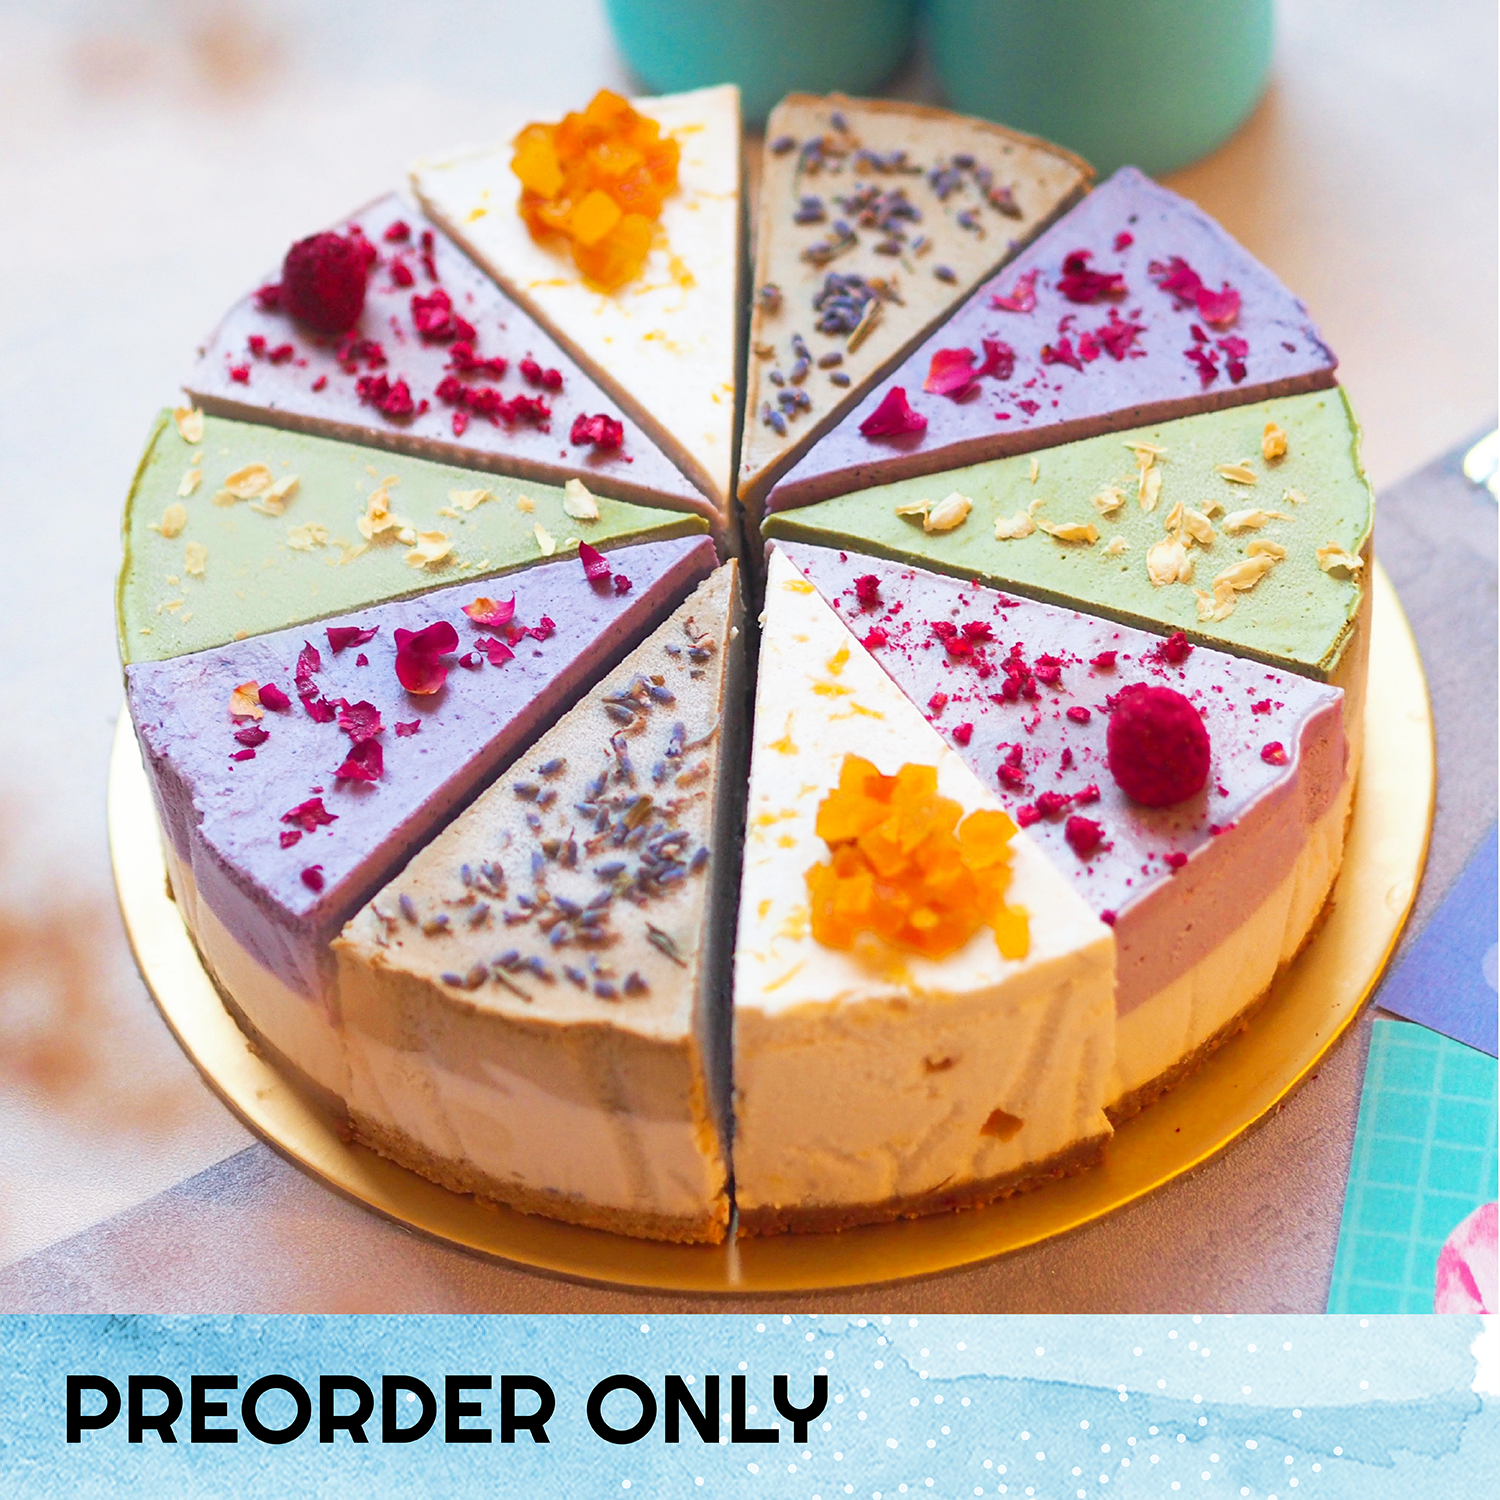 The Happy 'Cheese'cake - 8-inch Whole Cake (Preorder only) (N)